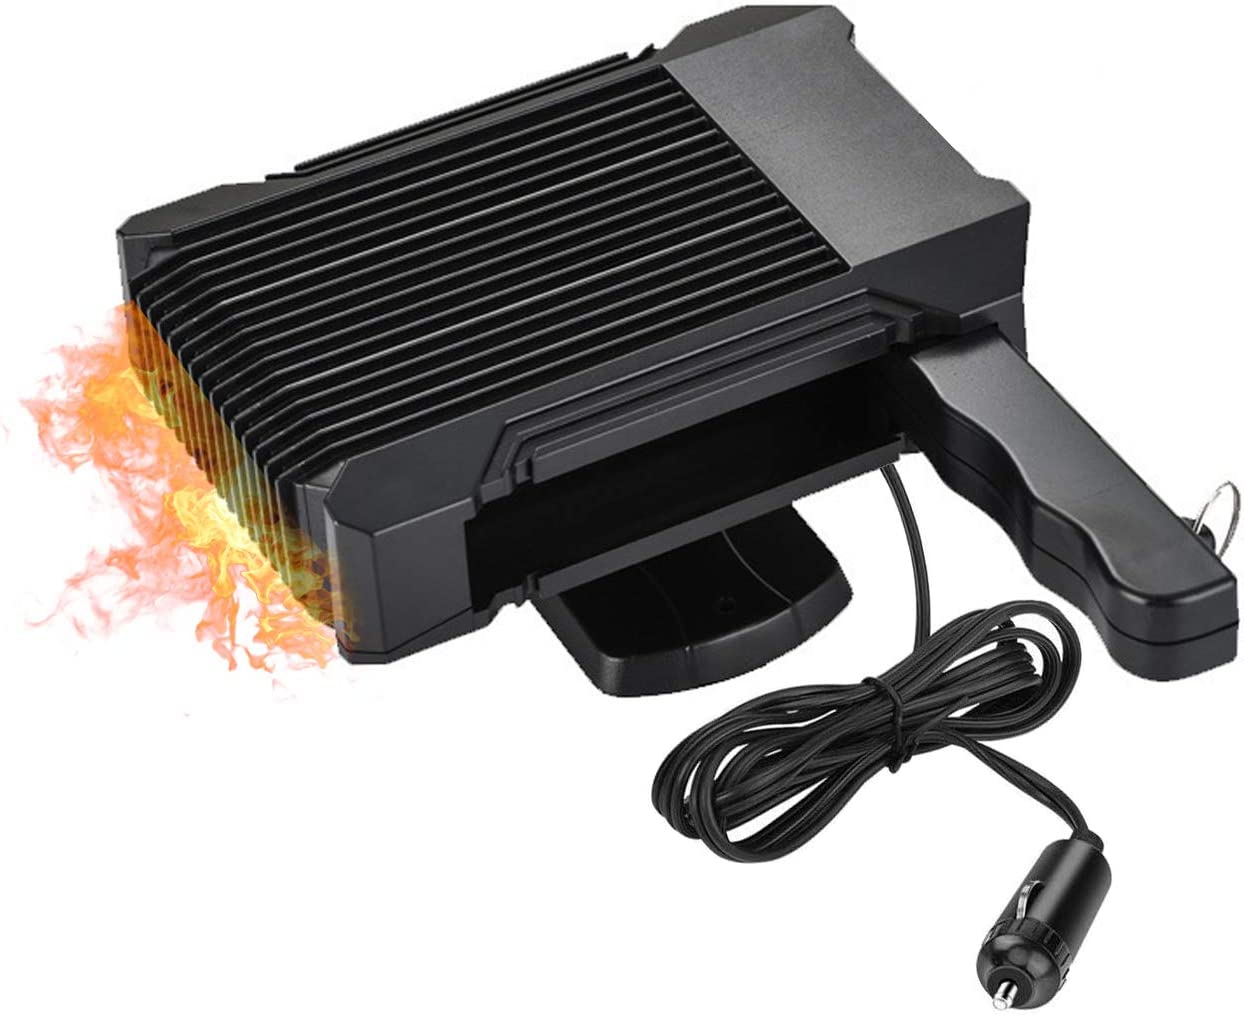 Black Portable Car Heater,30s Fast Heating Quickly Defrosts Defogger 12V 150W Auto Ceramic Heater Cooling Fan